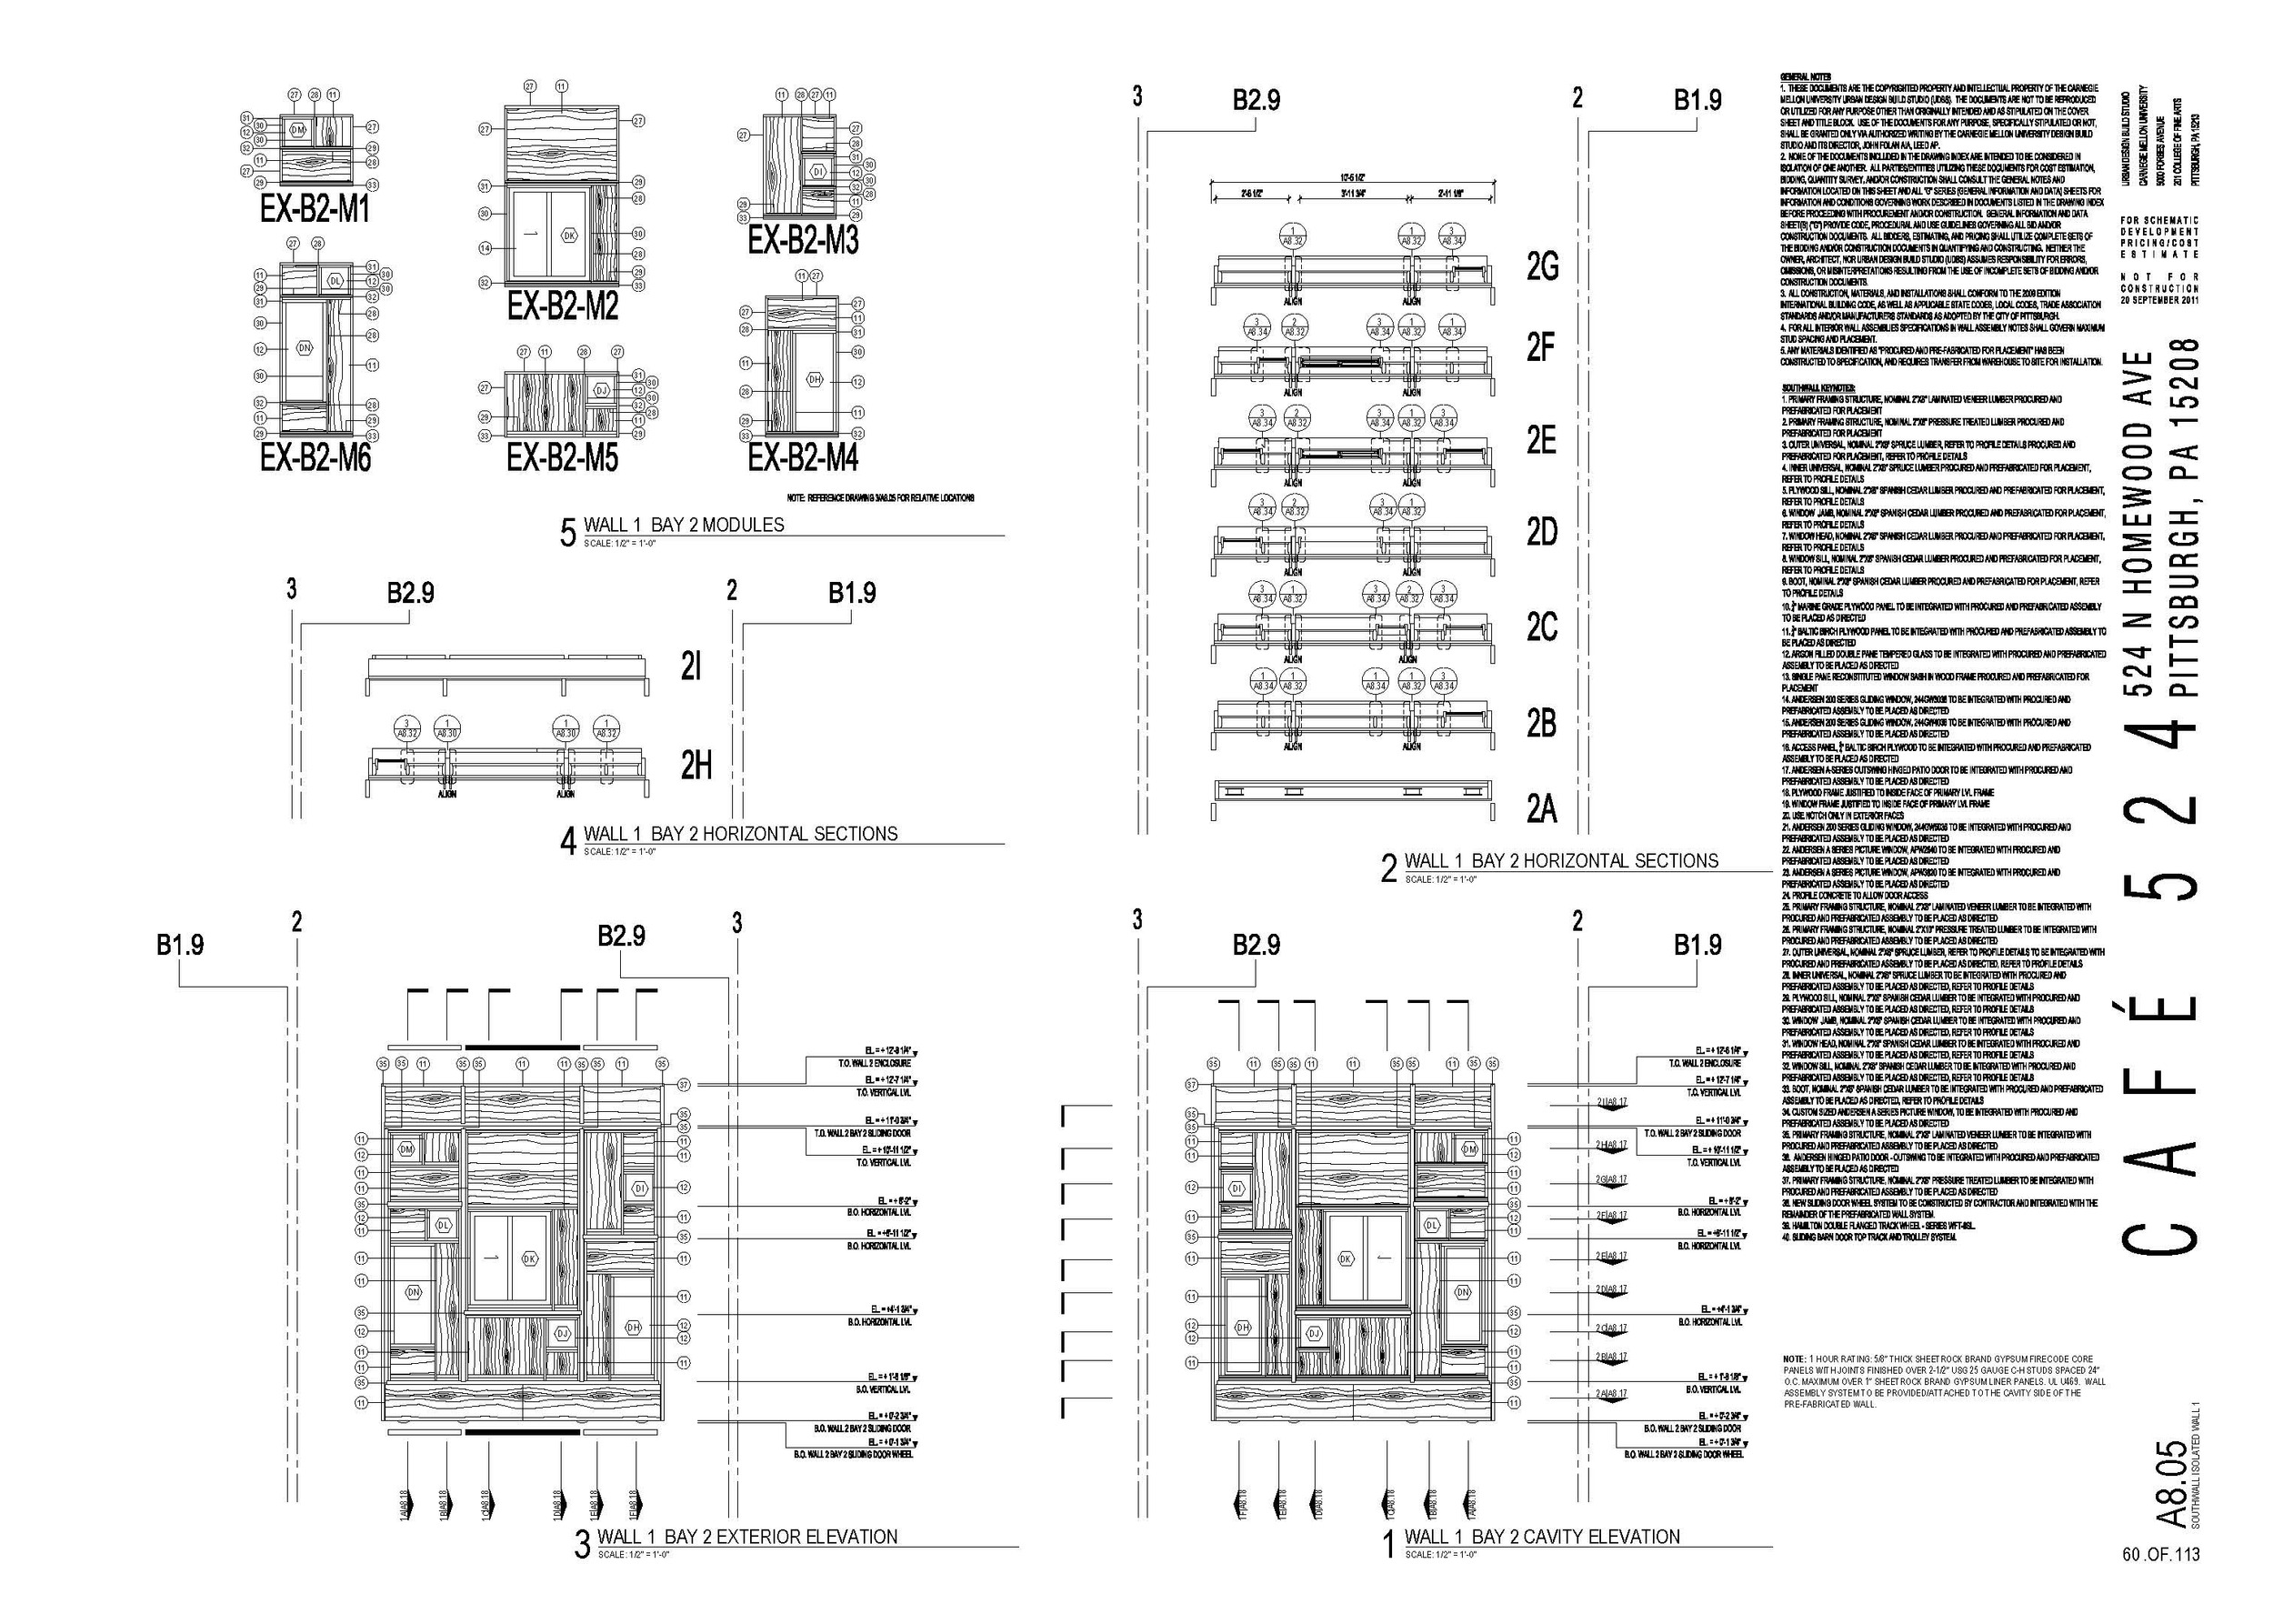 Wall module detail drawing excerpt from construction document set.